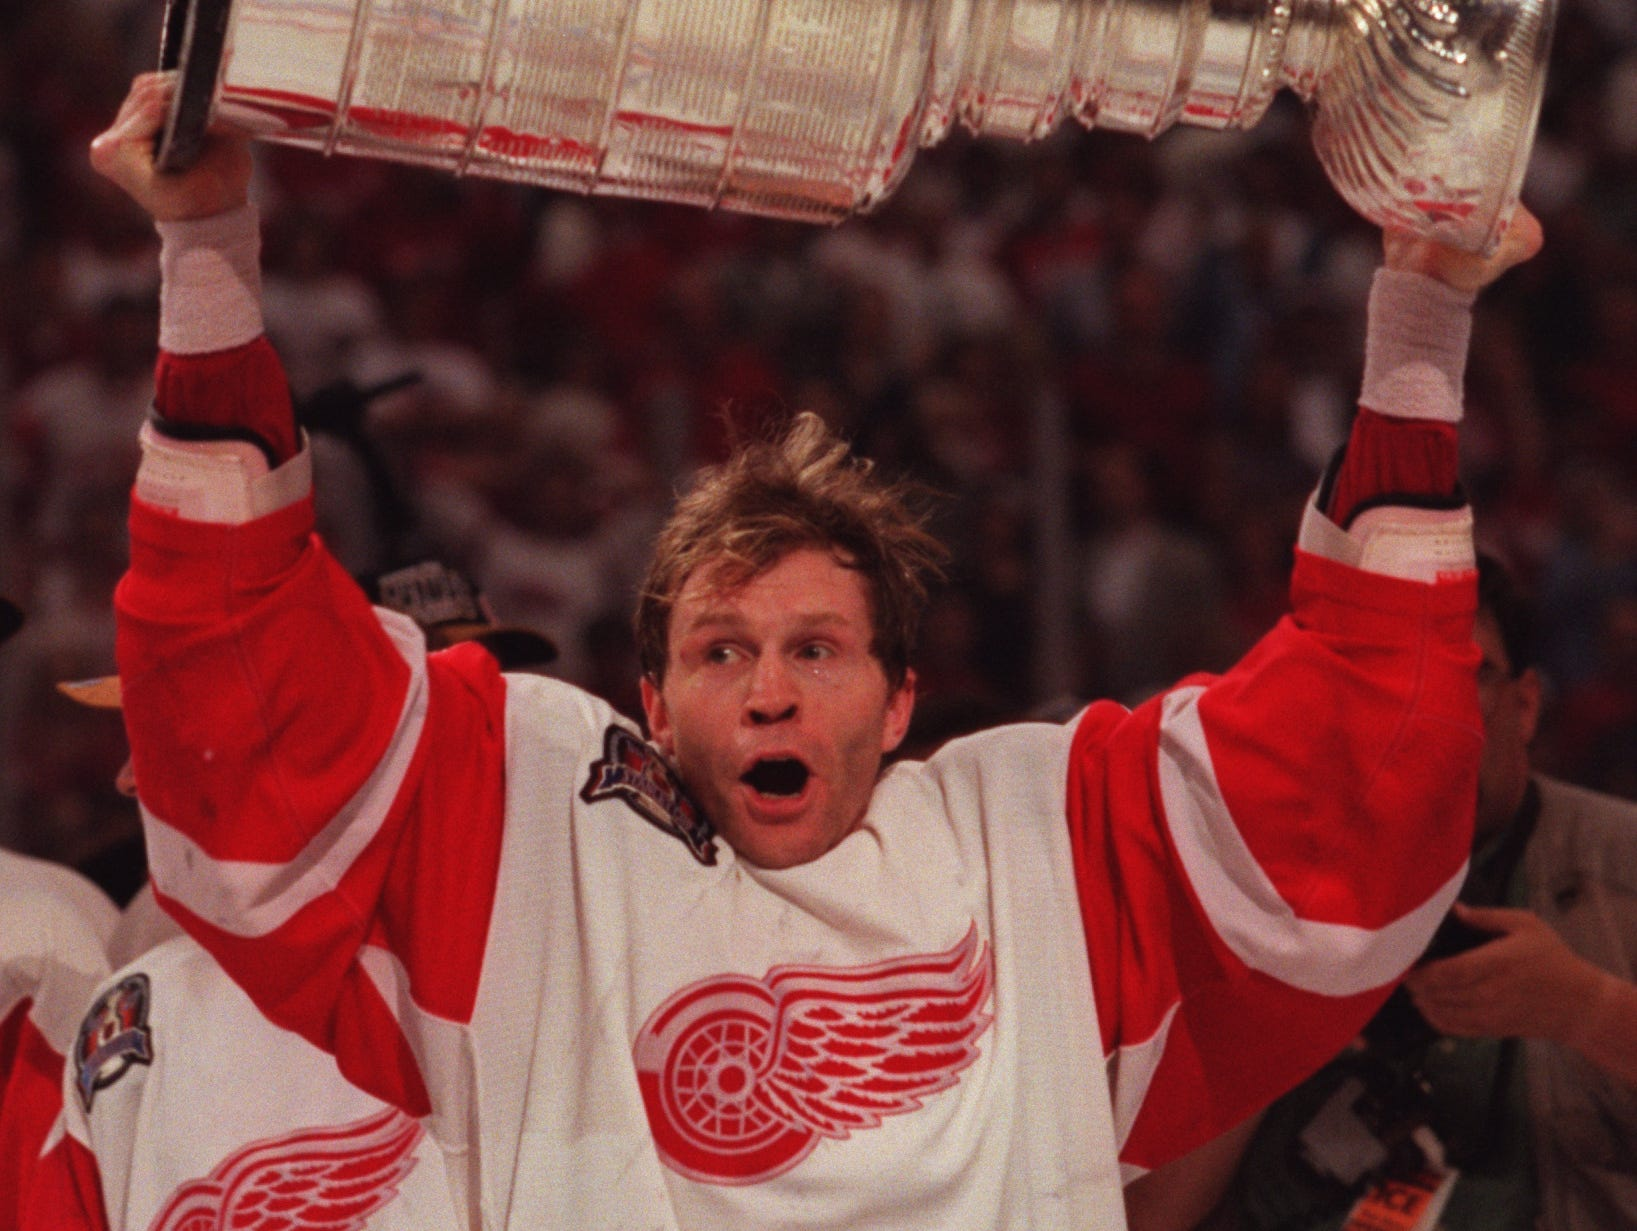 STEVE YZERMAN 1997-98 DETROIT RED WINGS STANLEY CUP CHAMPIONS 8 X 10 PHOTO 6